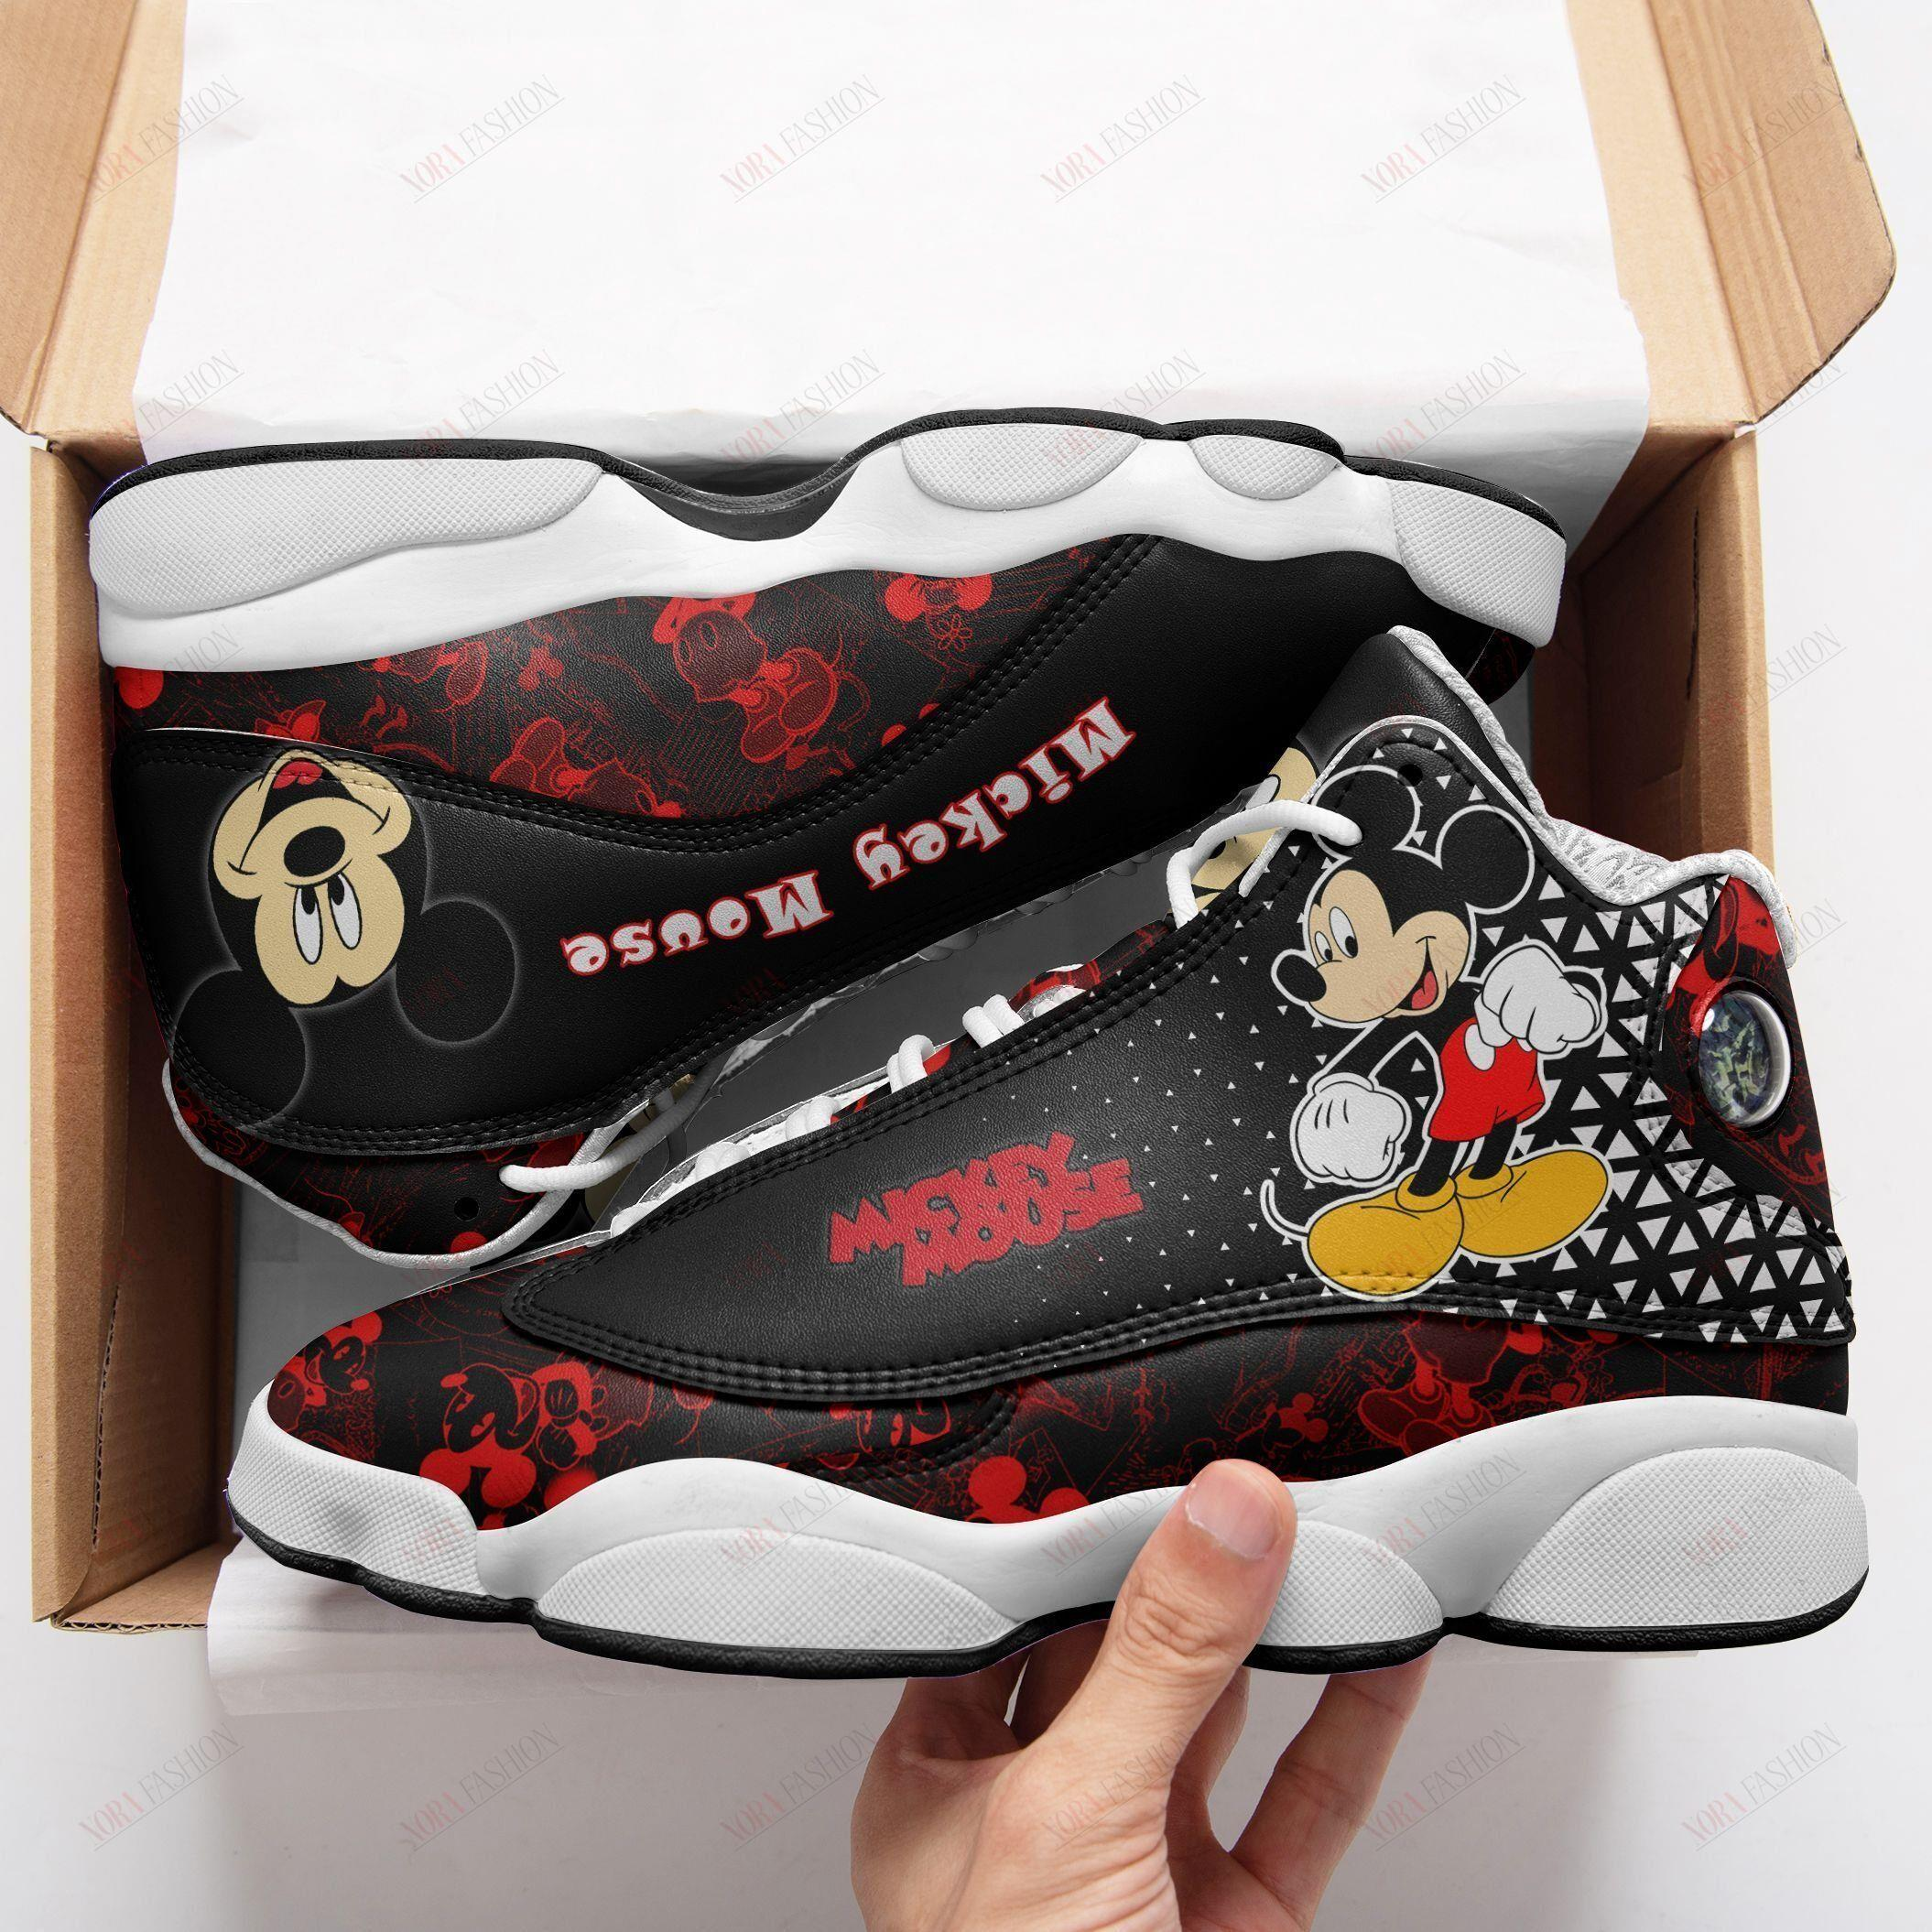 Mickey Air Jd13 Shoes